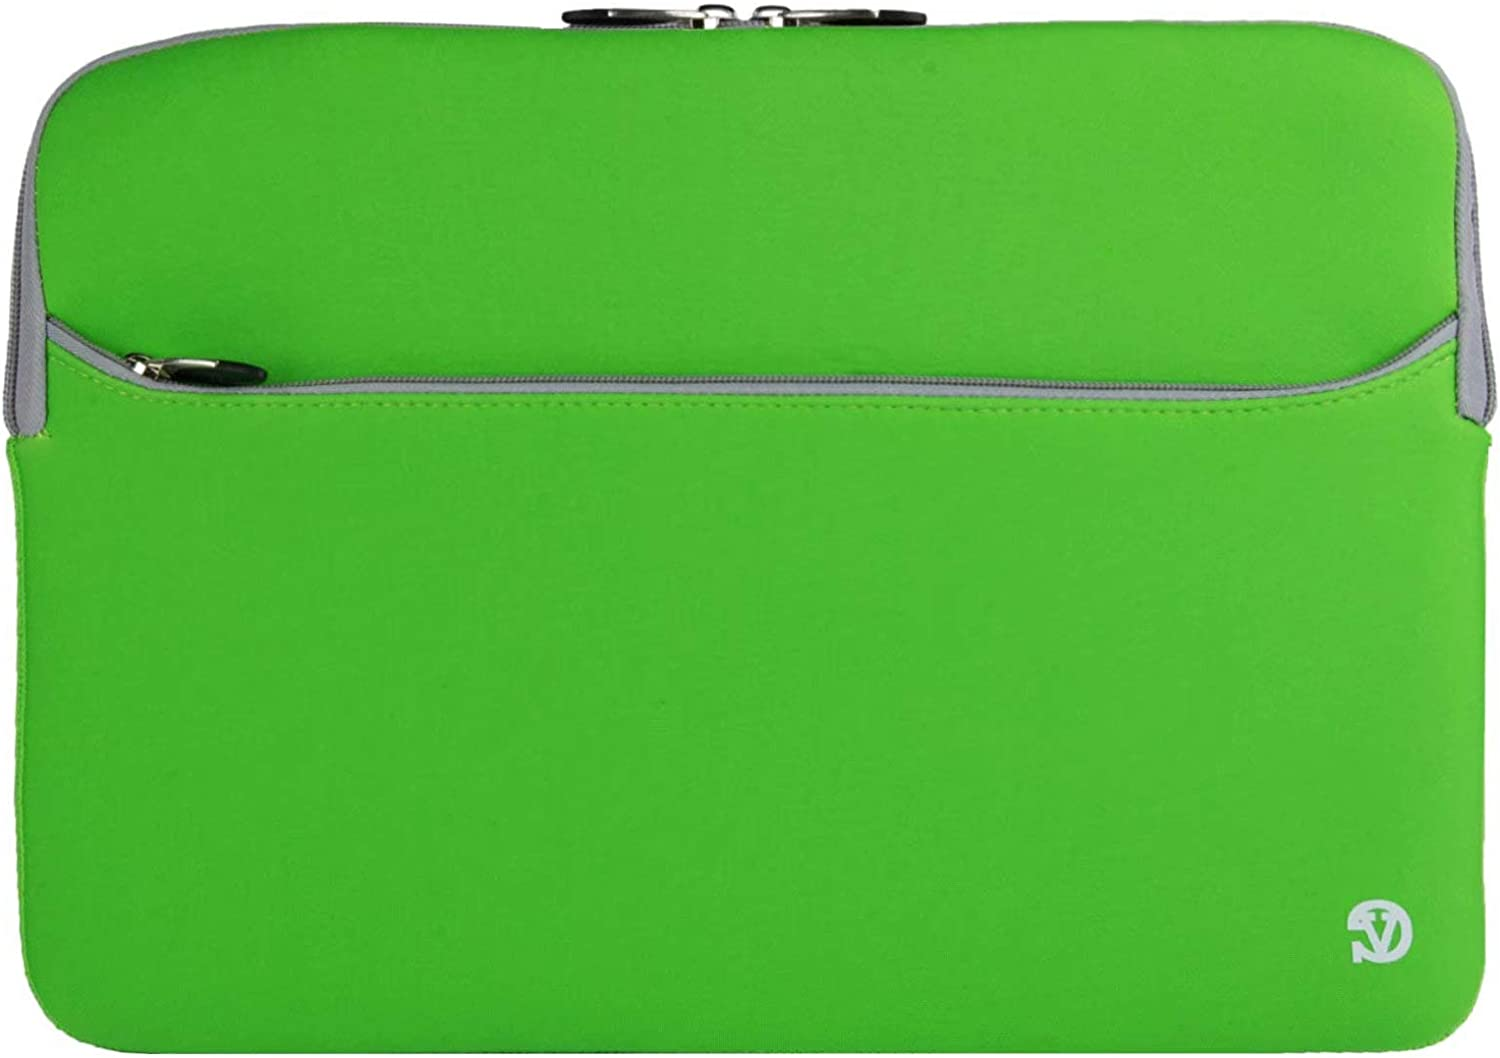 11.6 to 13.3 Inch Laptop Sleeve for Dell Inspiron 11 3180 3195, Inspiron 13 5390 5391 7375 7386 7390, Latitude 5190 3190 3190 3301 3390 5300 7212 7220 7220EX 7300 7390, Vostro 13, XPS 13